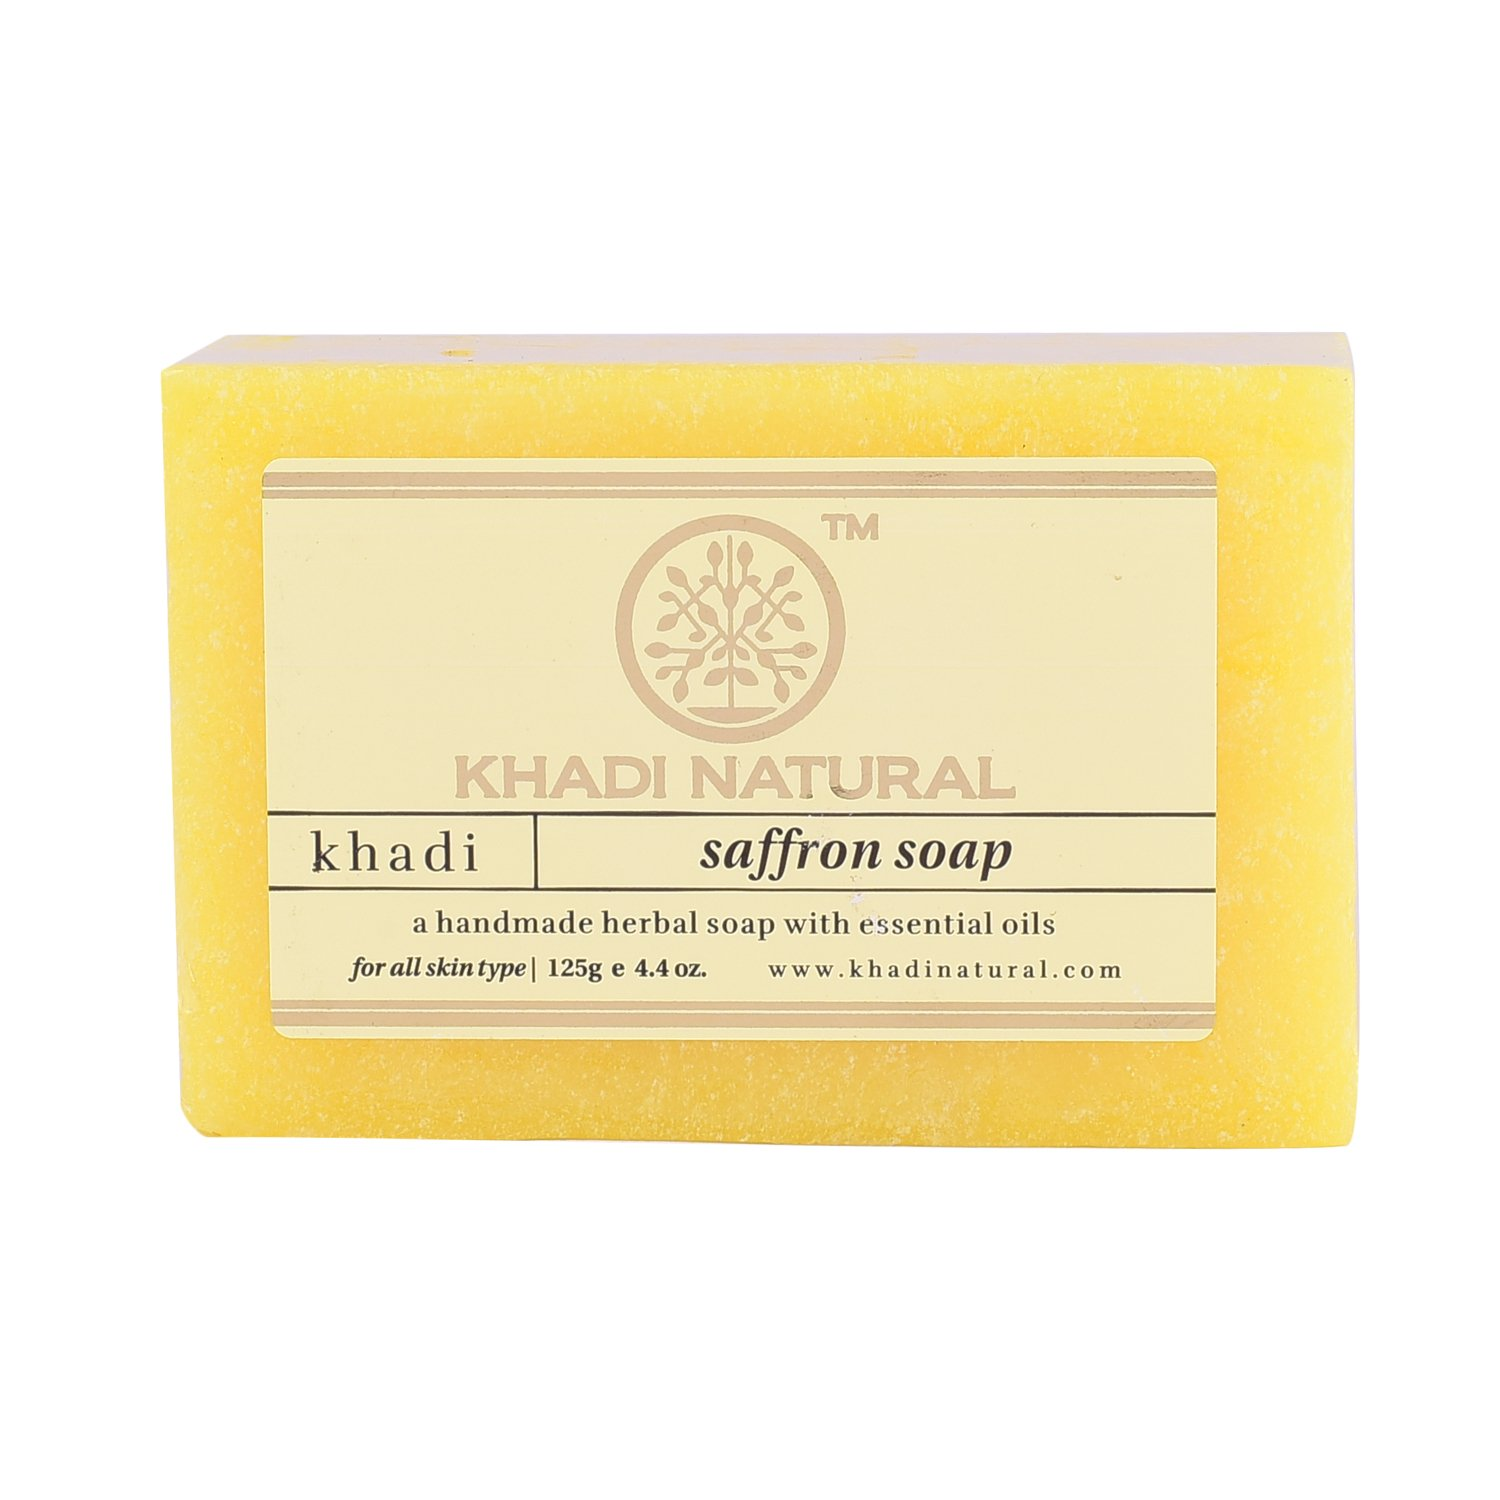 Мыло Saffron Soap Khadi Natural (Мыло Шафран Кхади Натурал) 125гр